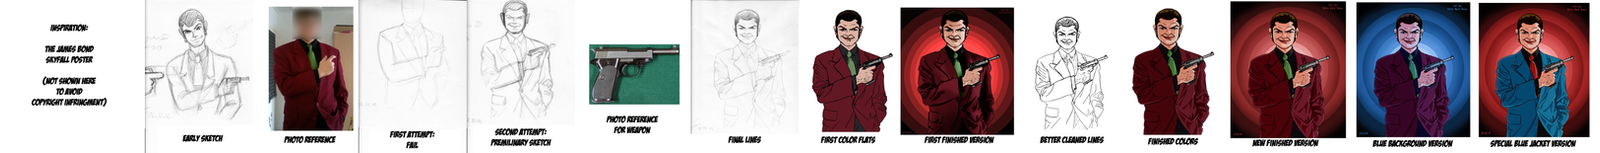 The Longuest WIP: Lupin III for the new year by ShinRedDear